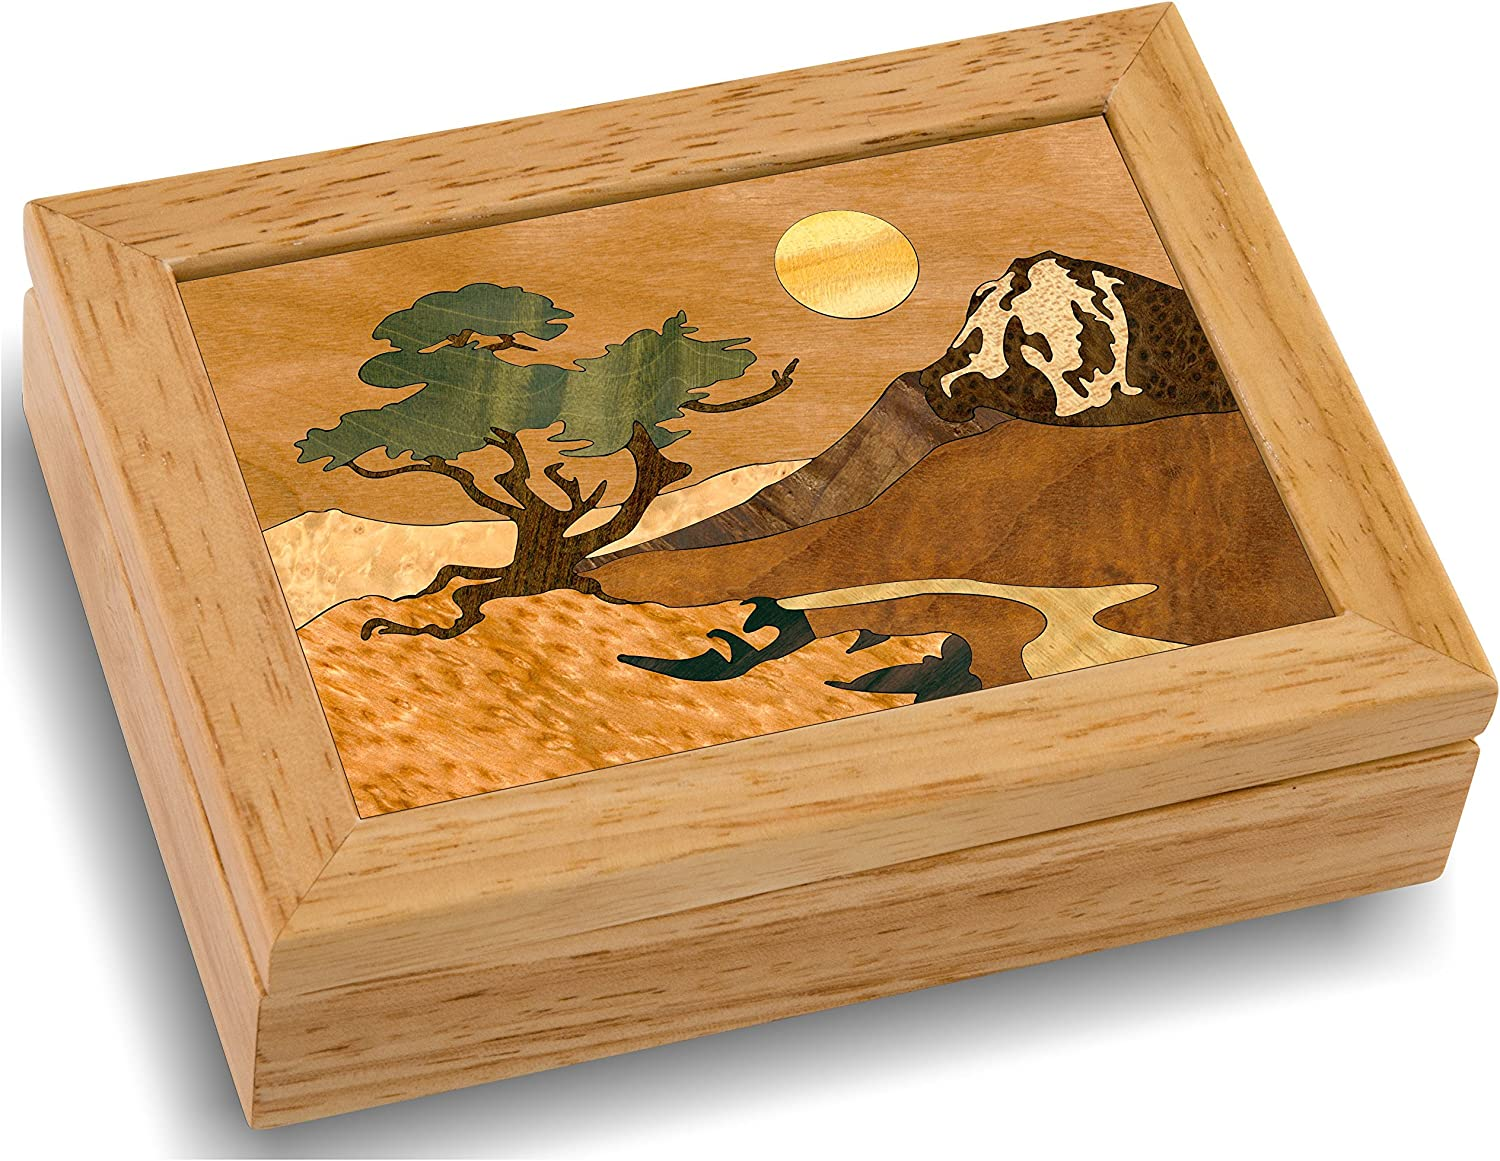 Wood Mountain Box Our shop most popular - Special sale item Handmade Unmatched N USA Quality Unique